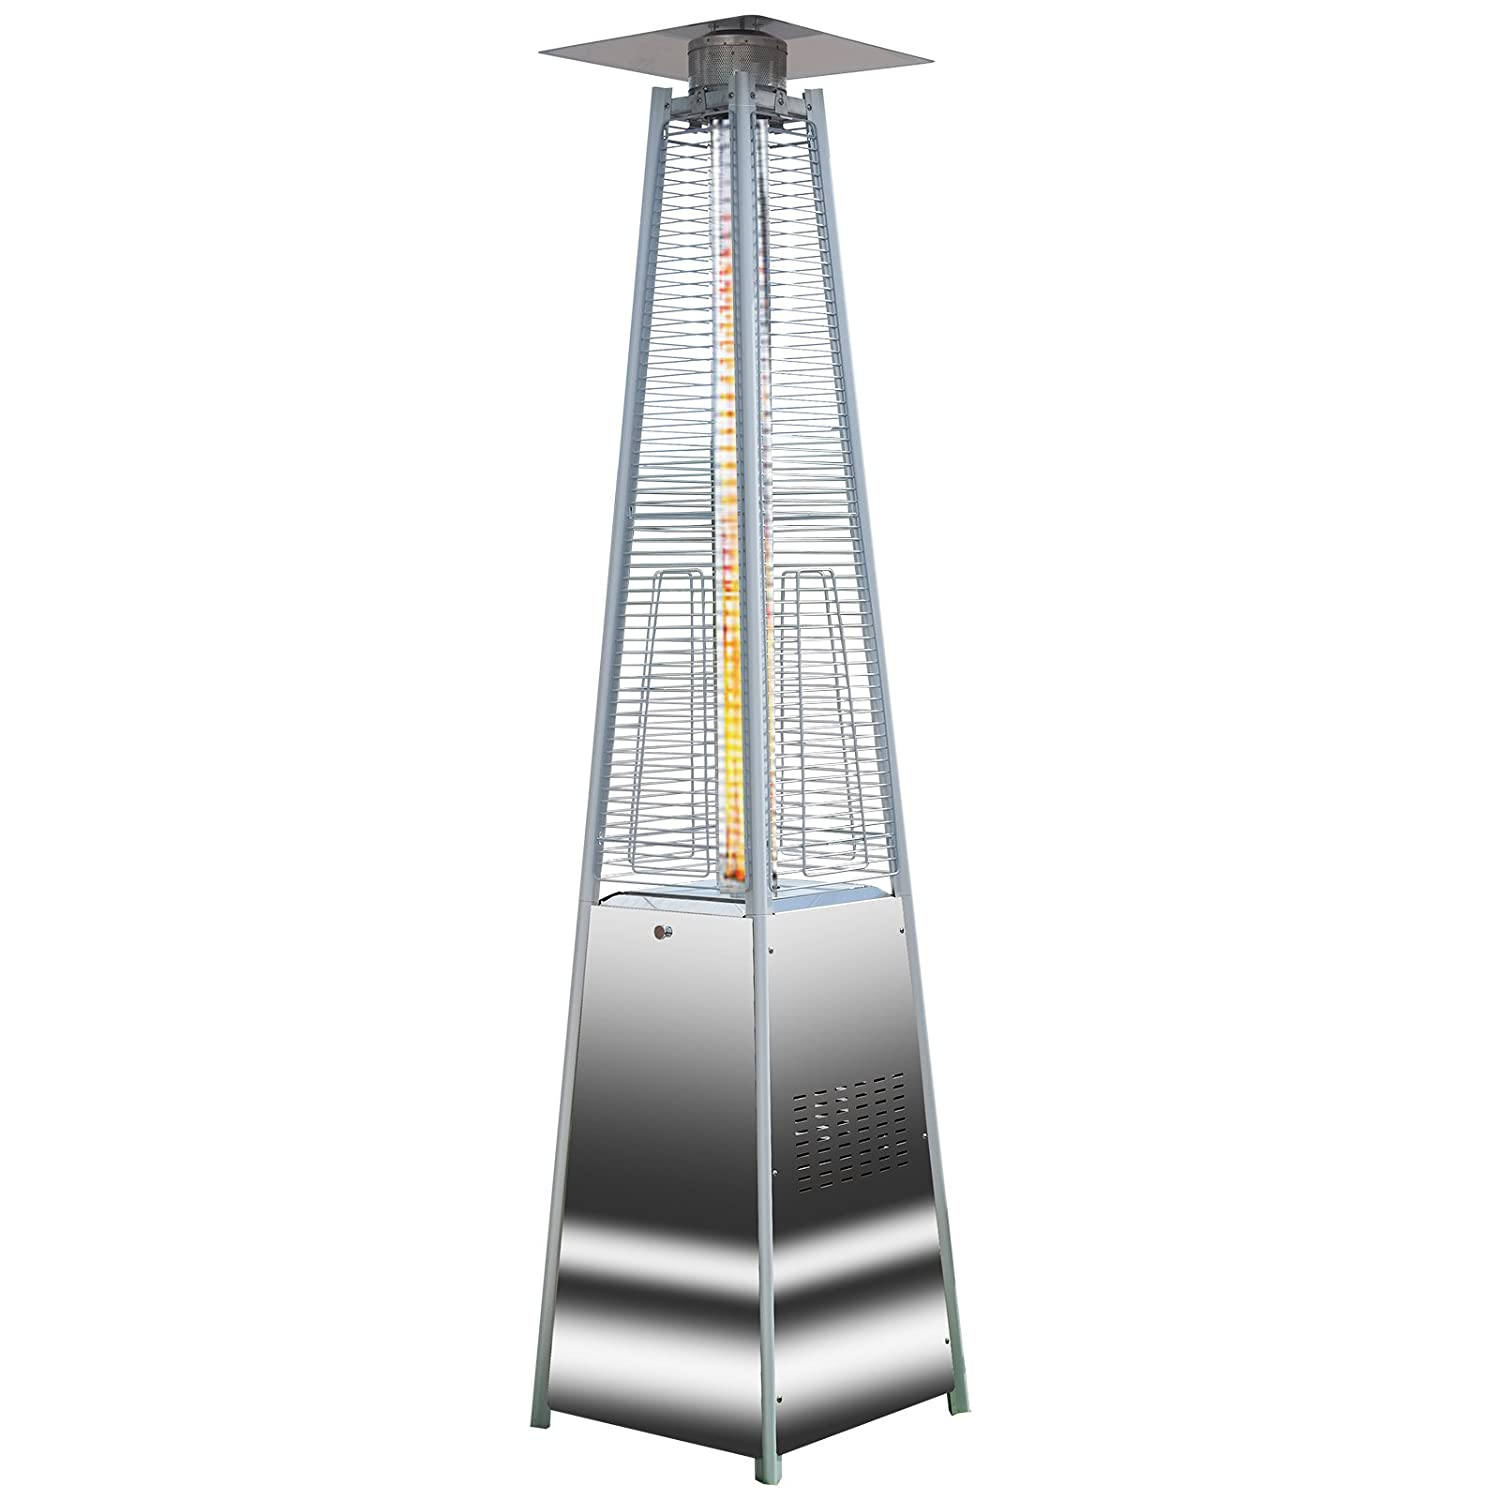 Attractive Quartz Glass Flame Tube Patio Heater Stainless Steel 227cm Tall 13 Kw  Stylish: Amazon.co.uk: Garden U0026 Outdoors